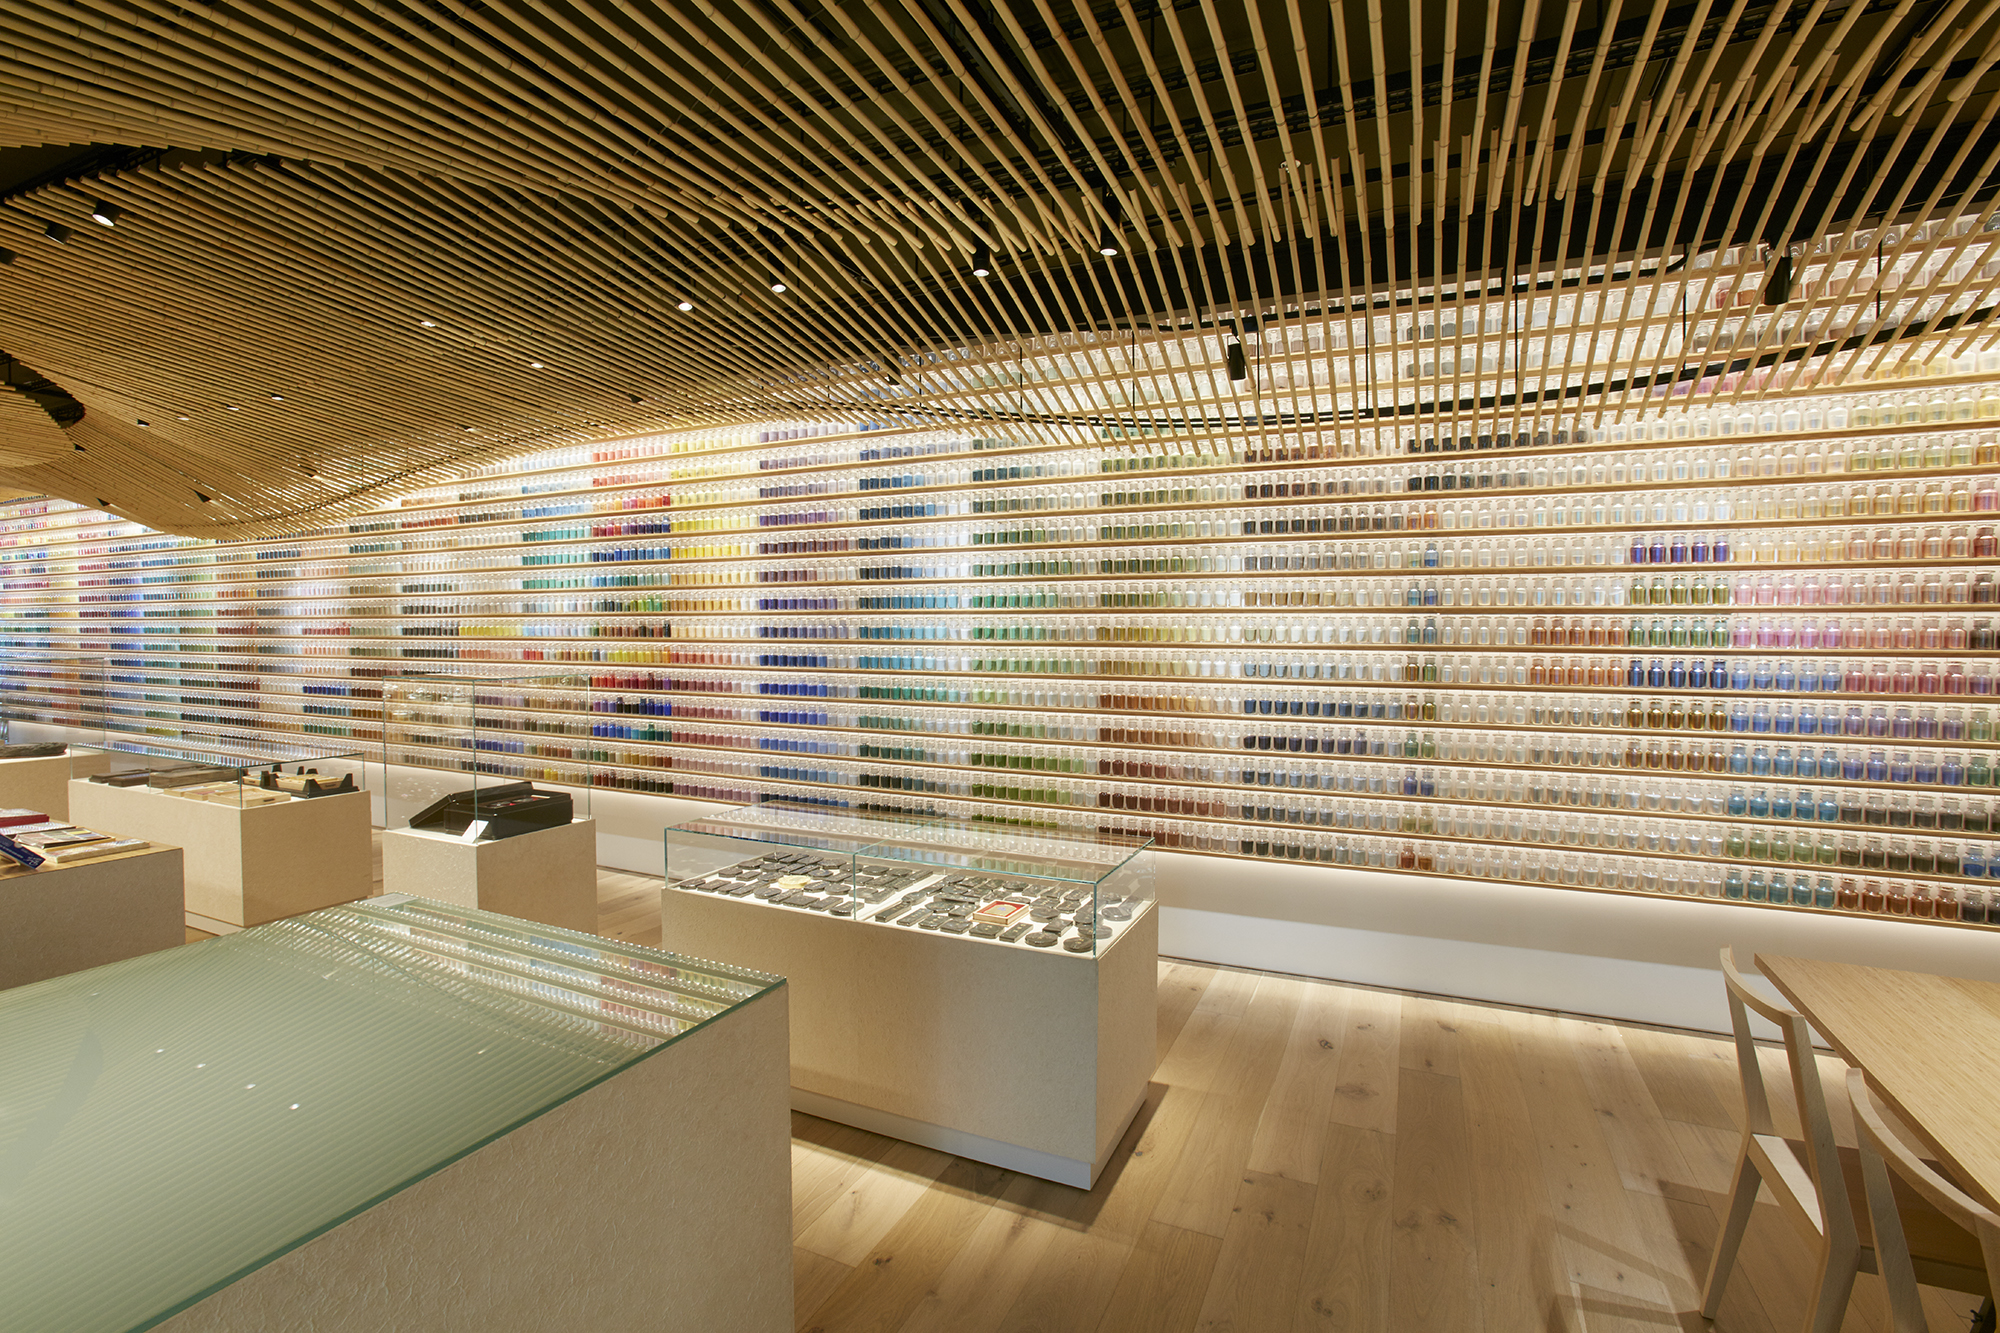 Best stationery stores in Tokyo